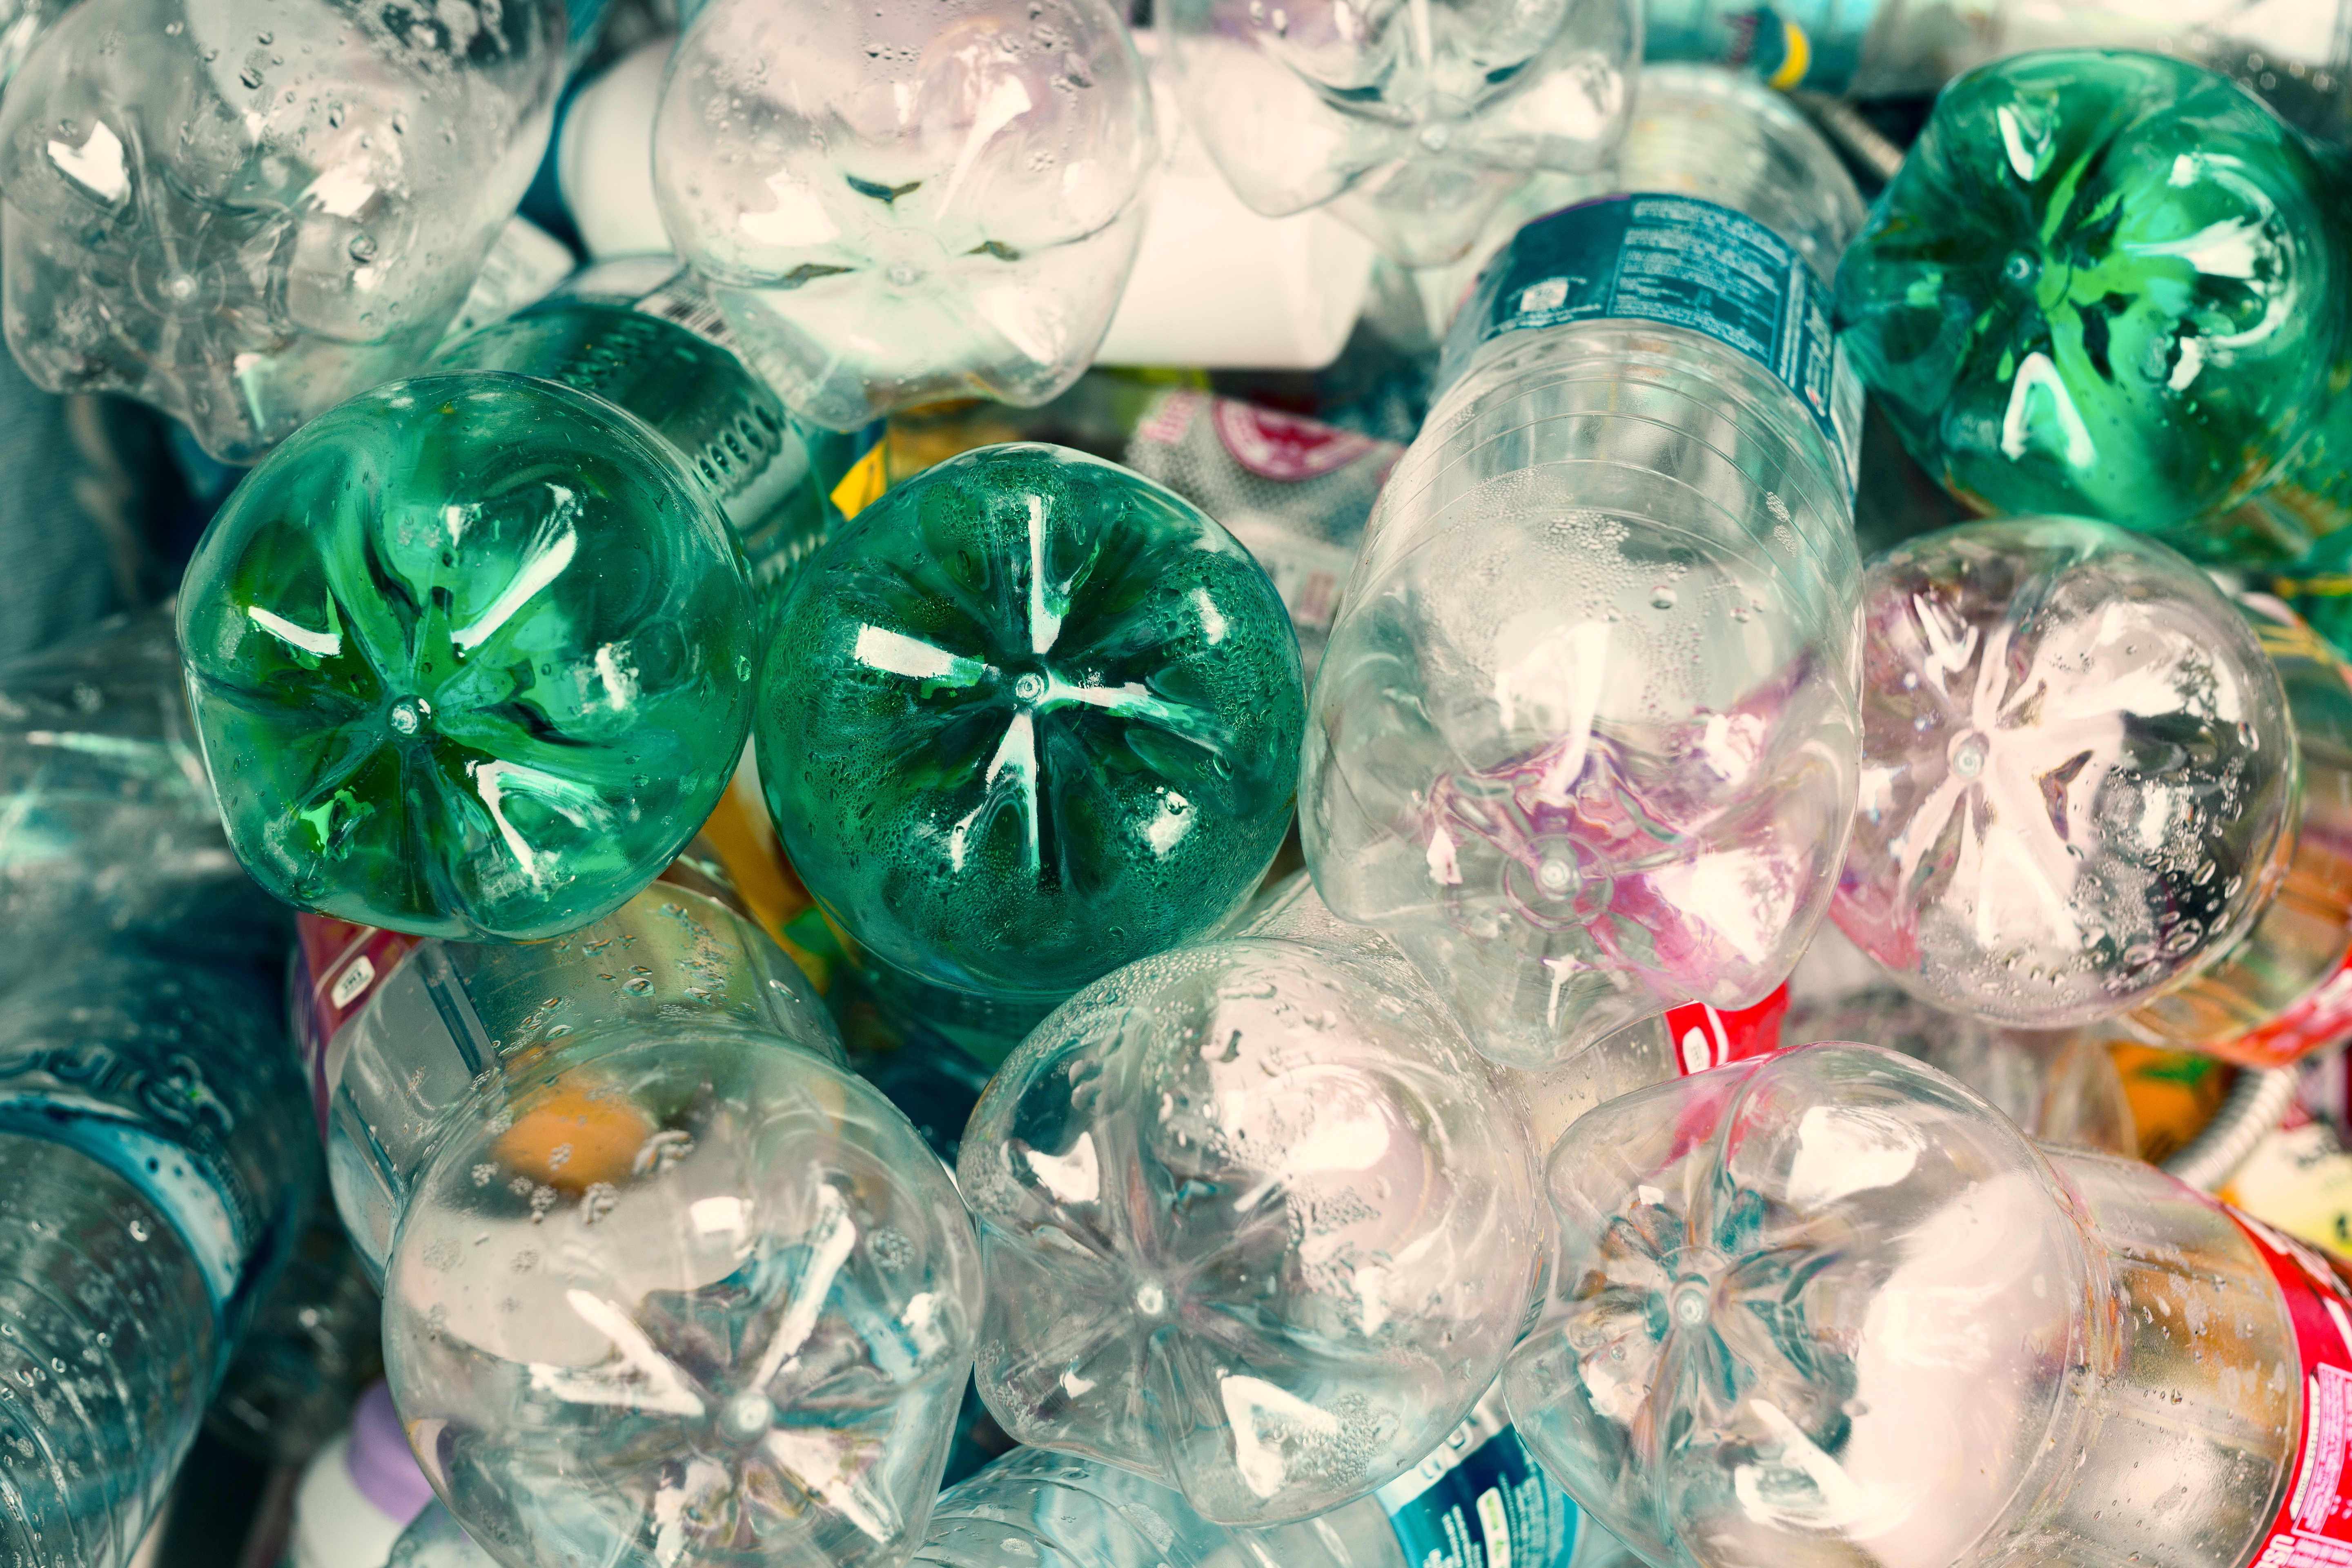 Eastman Chemical Company introduced Avra, a high-performance fiber made from post-consumer plastic bottles